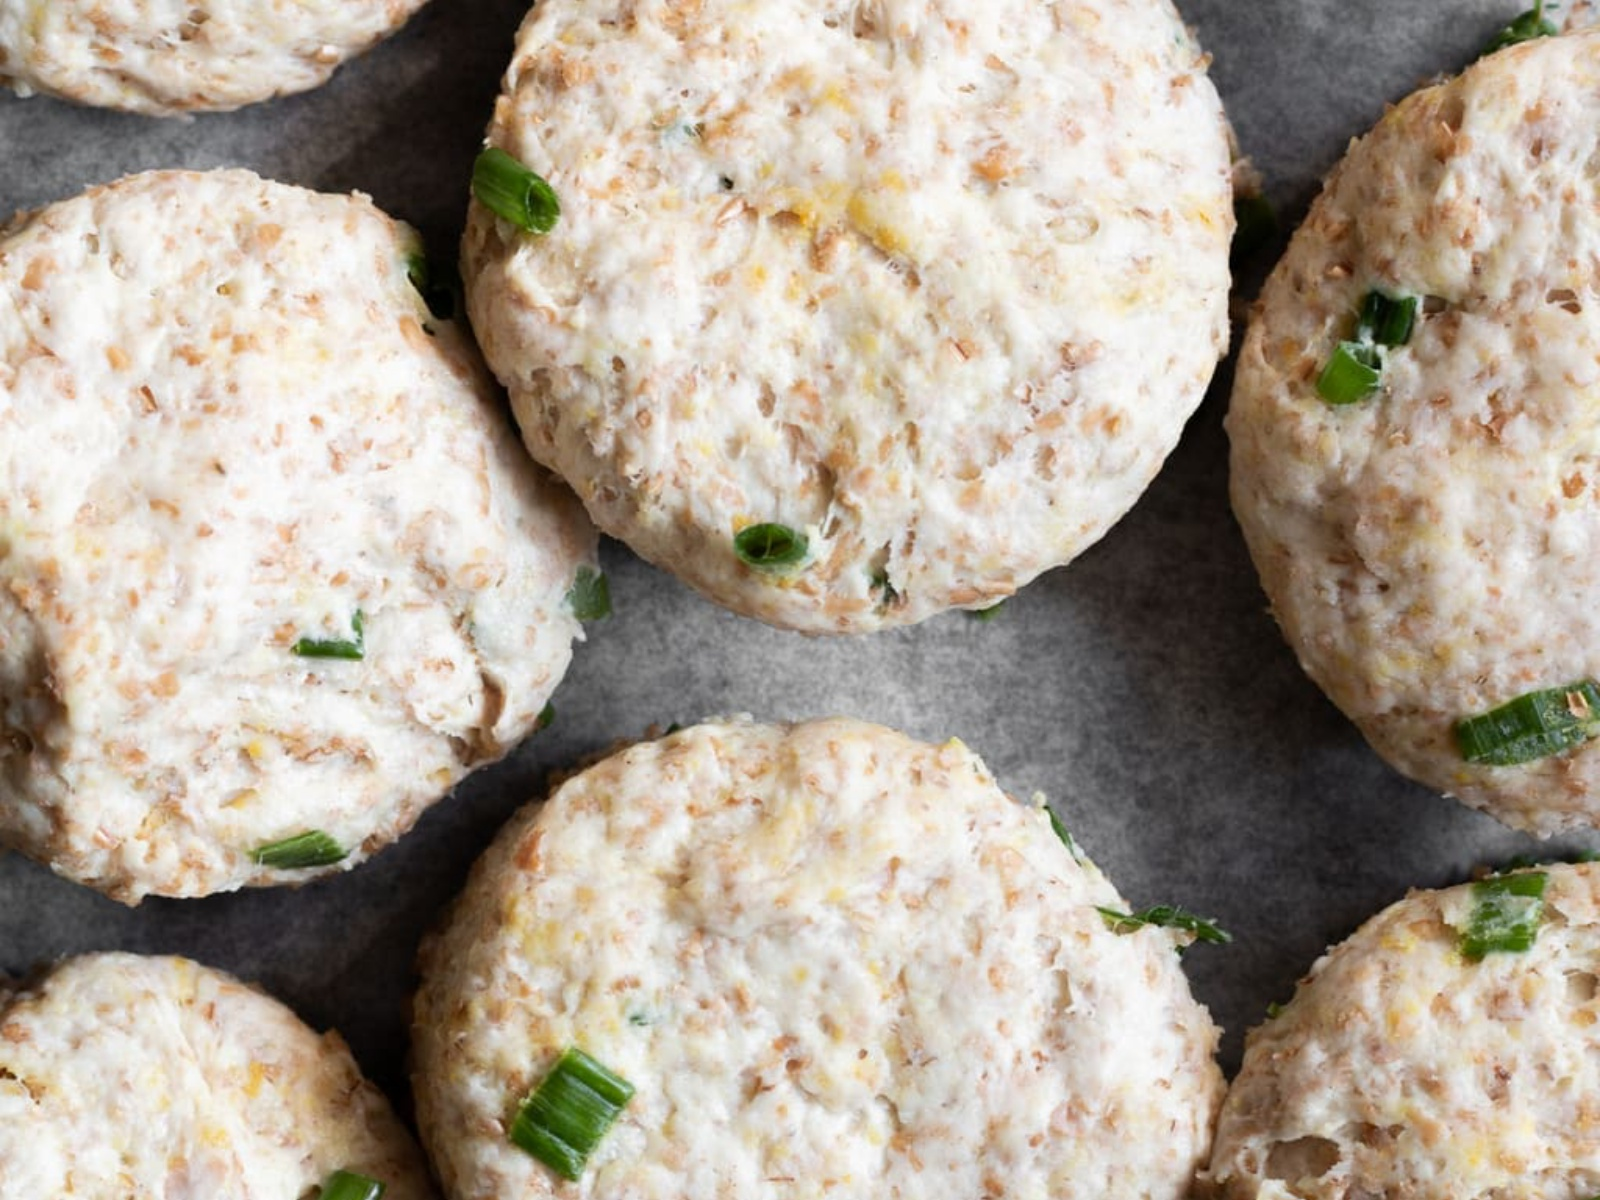 Savory Biscuits With Scallions